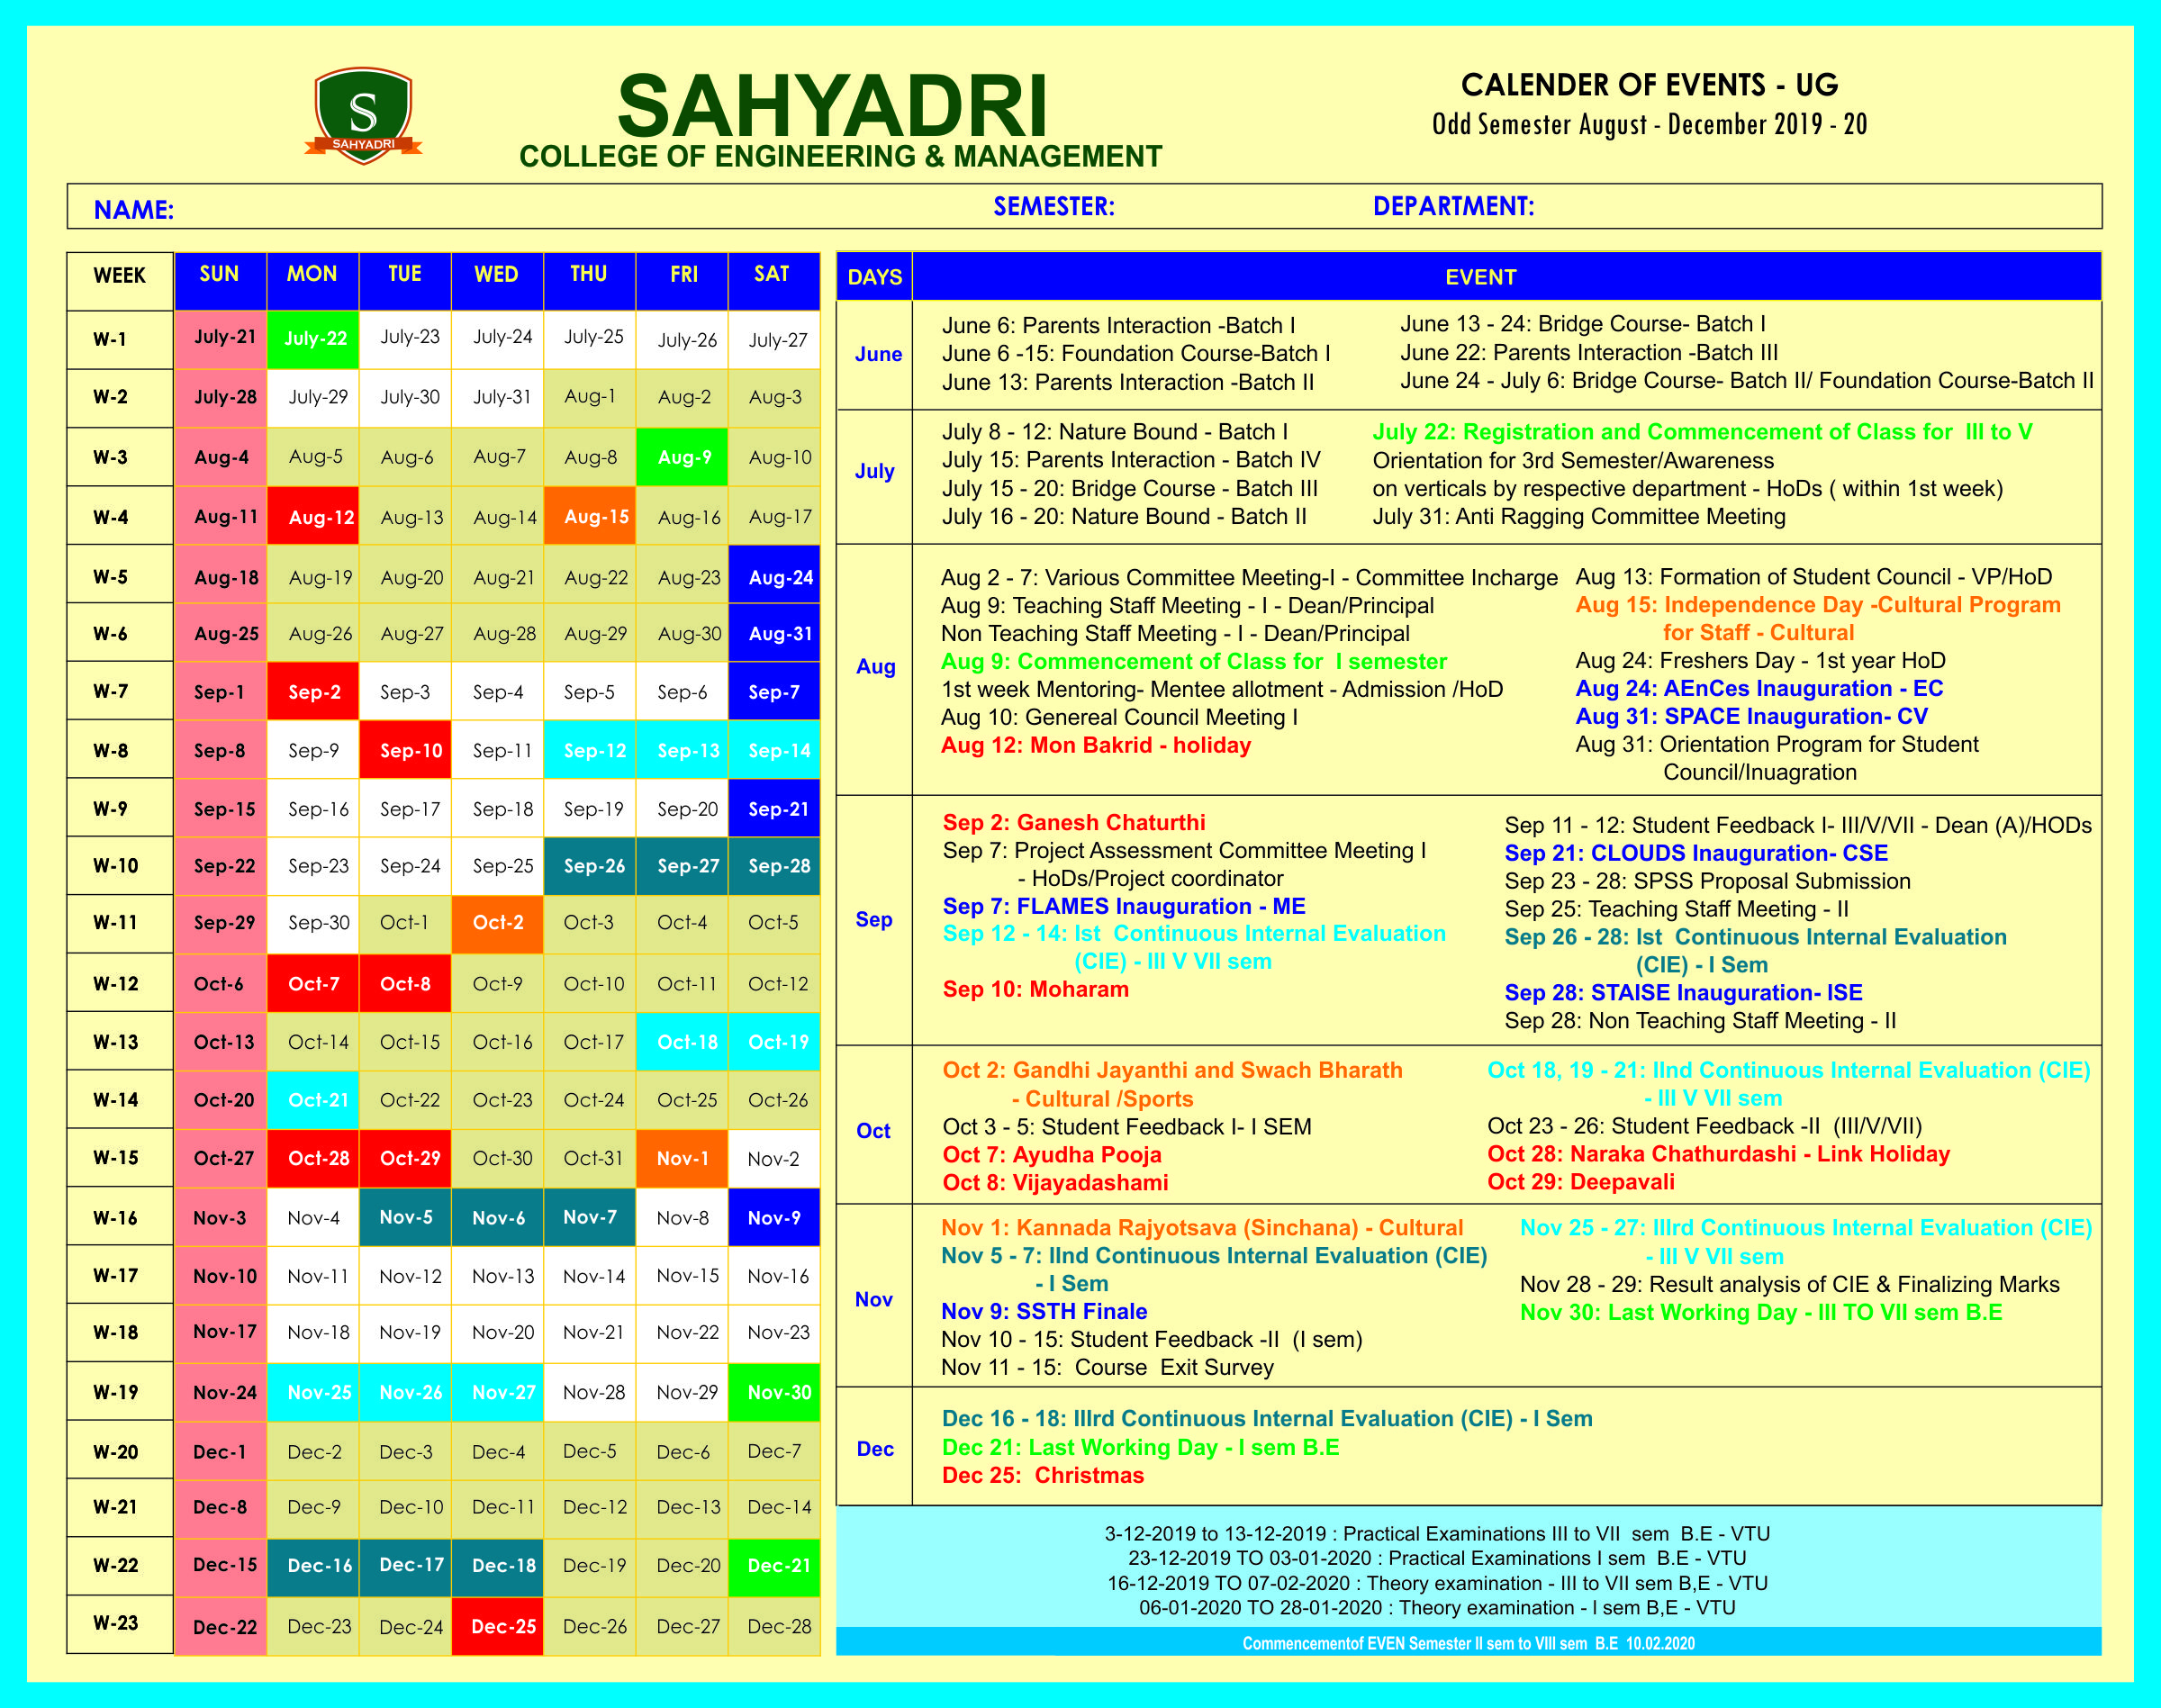 Sahyadri College Of Engineering & Management